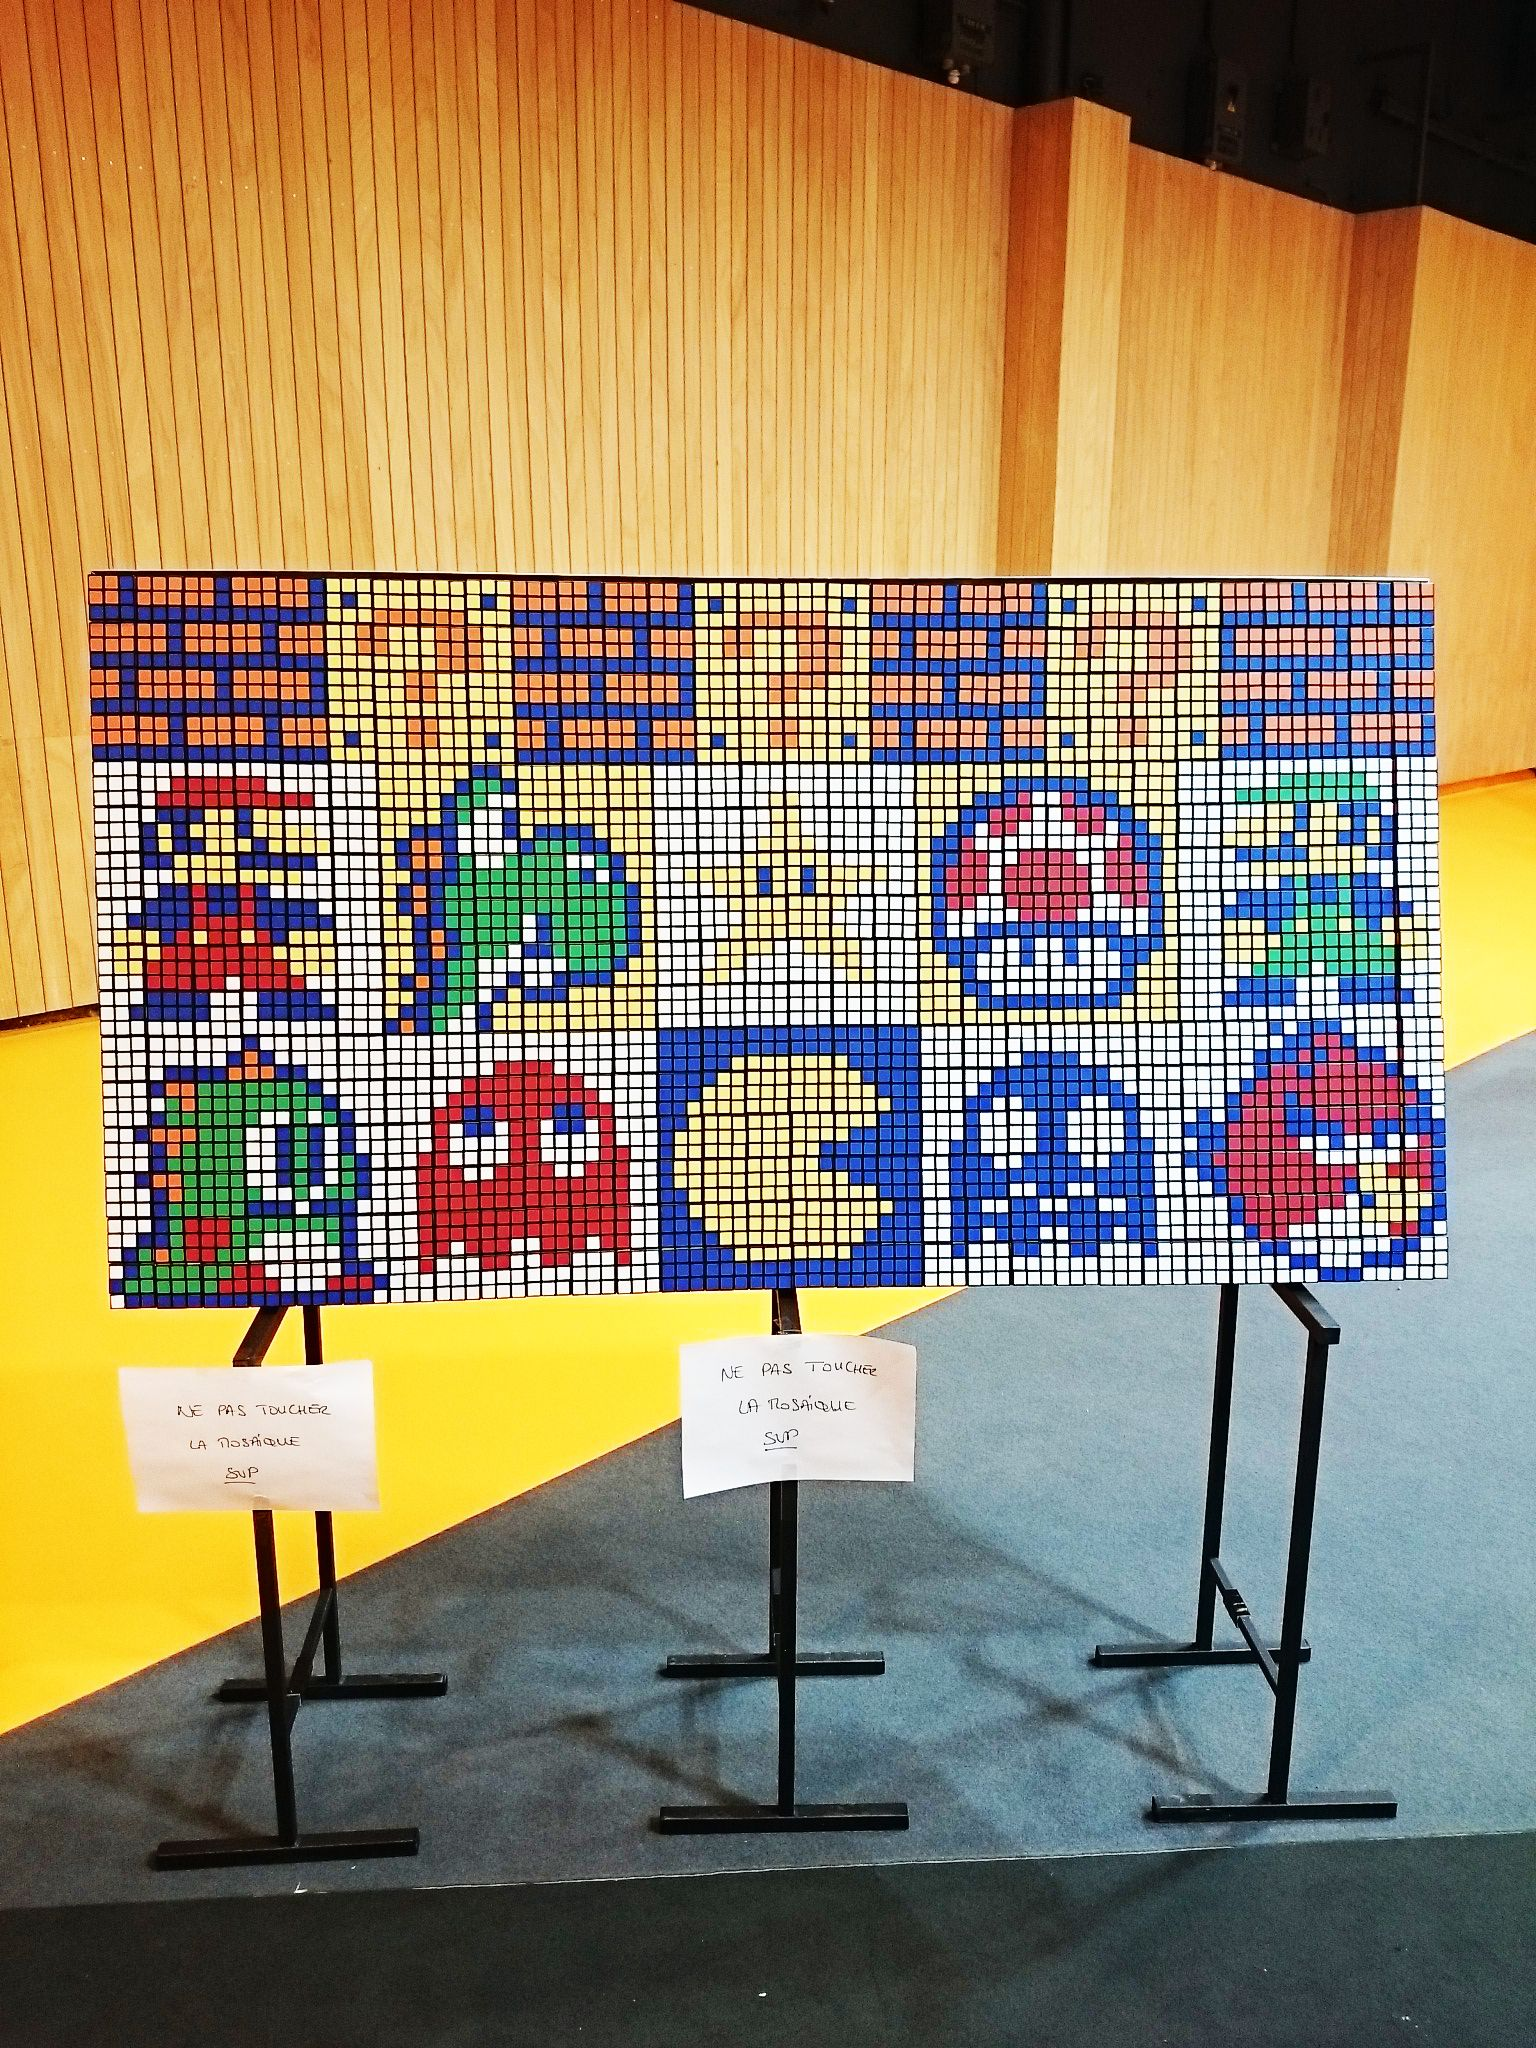 8bits Video game characters in a Rubik's cube mosaic for Design Your Cube at Kidexpo by the Cubeart Brothers #DYC #Designyourcube #Rubik #Art